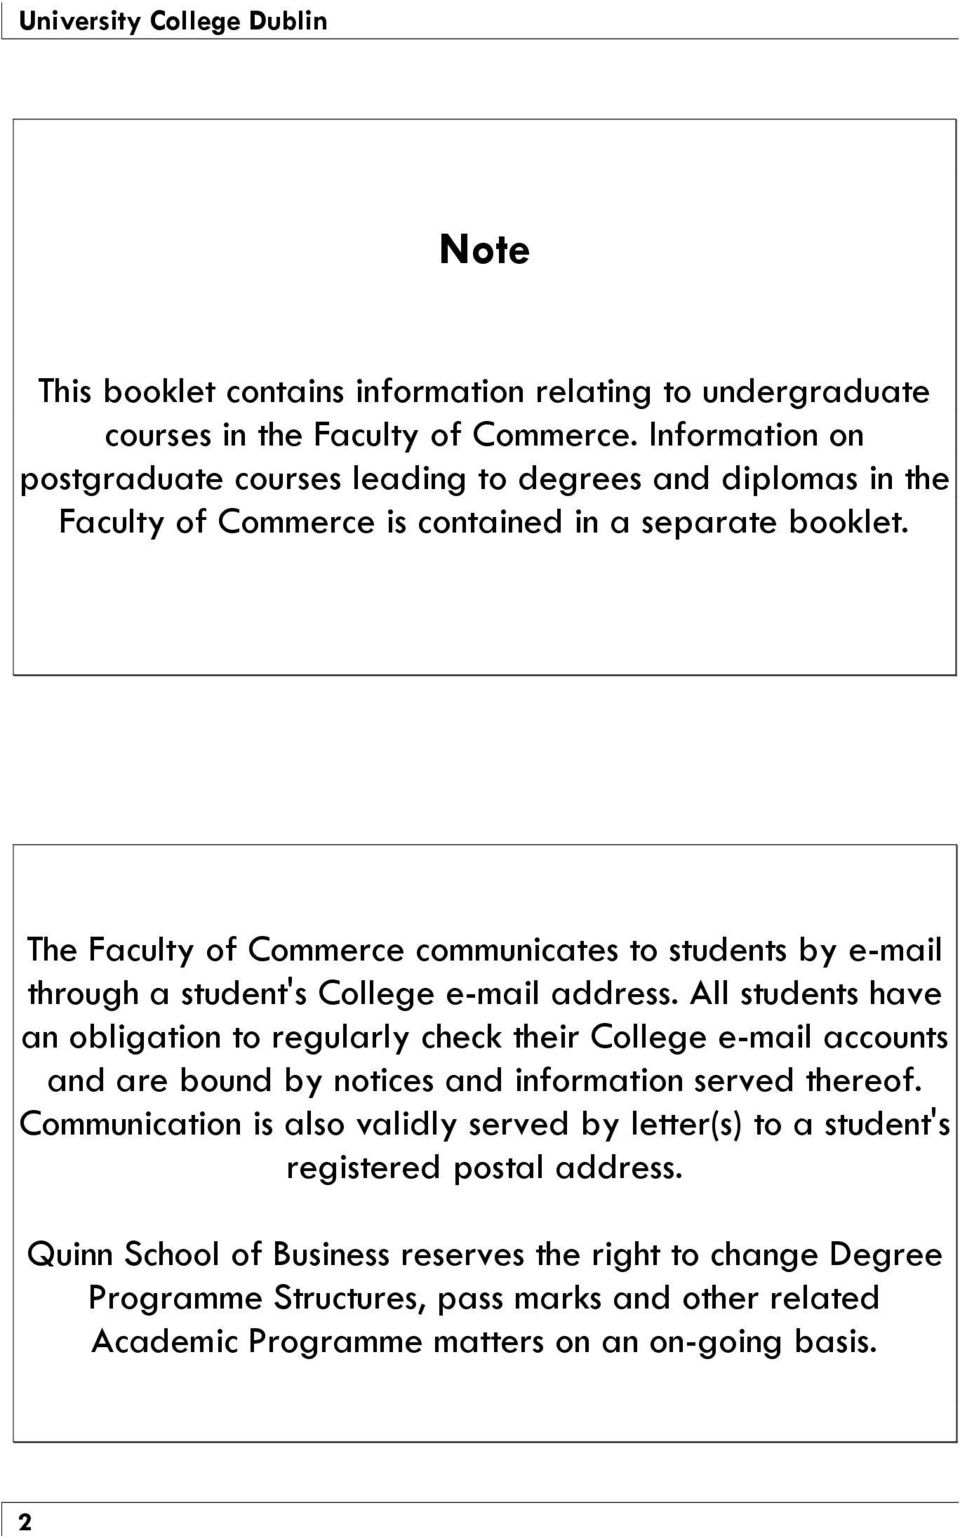 The Faculty of Commerce communicates to students by e-mail through a student's College e-mail address.